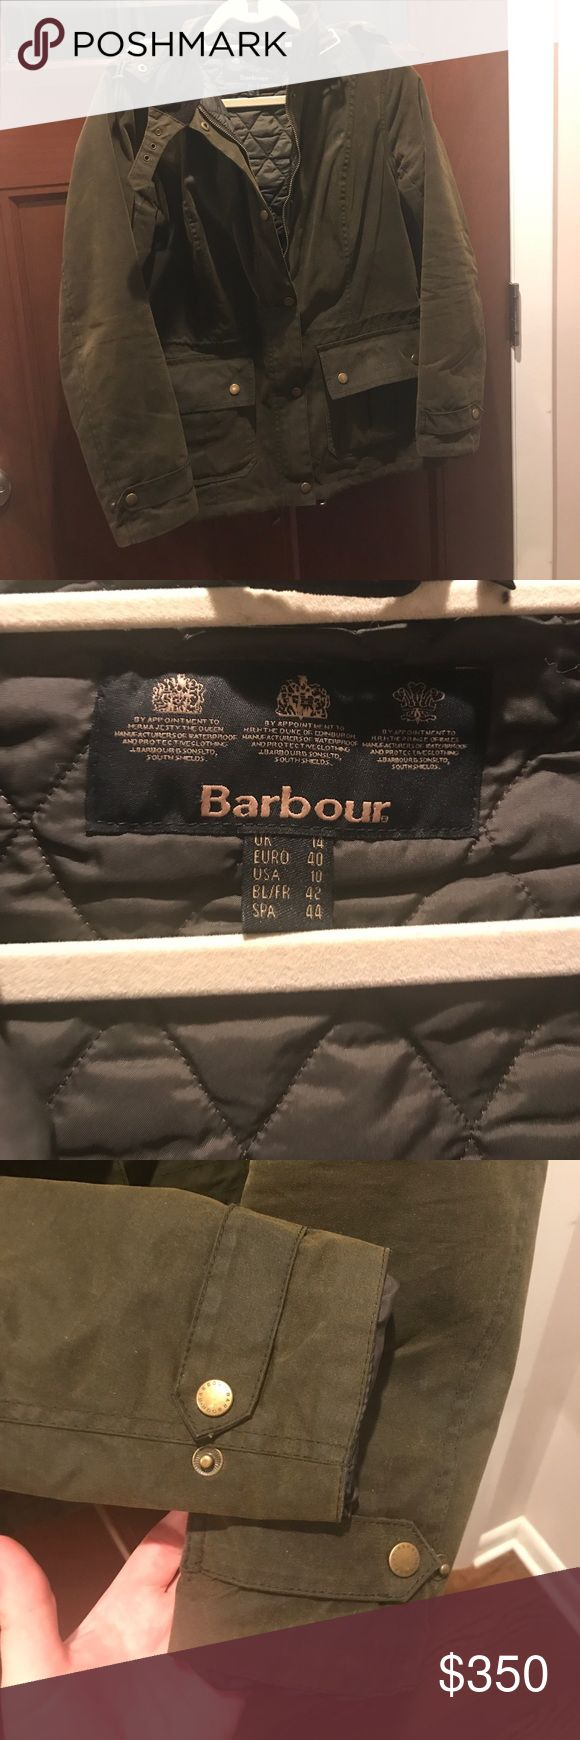 Barbour Jacket Barbour jacket classic khaki color detachable hood. Waxed finish has quilted lining two from pockets classic sleeve with clasp has elastic to cinch waist line size USA 10. Worn one season a few times still has wax coating Barbour Jackets & Coats Utility Jackets